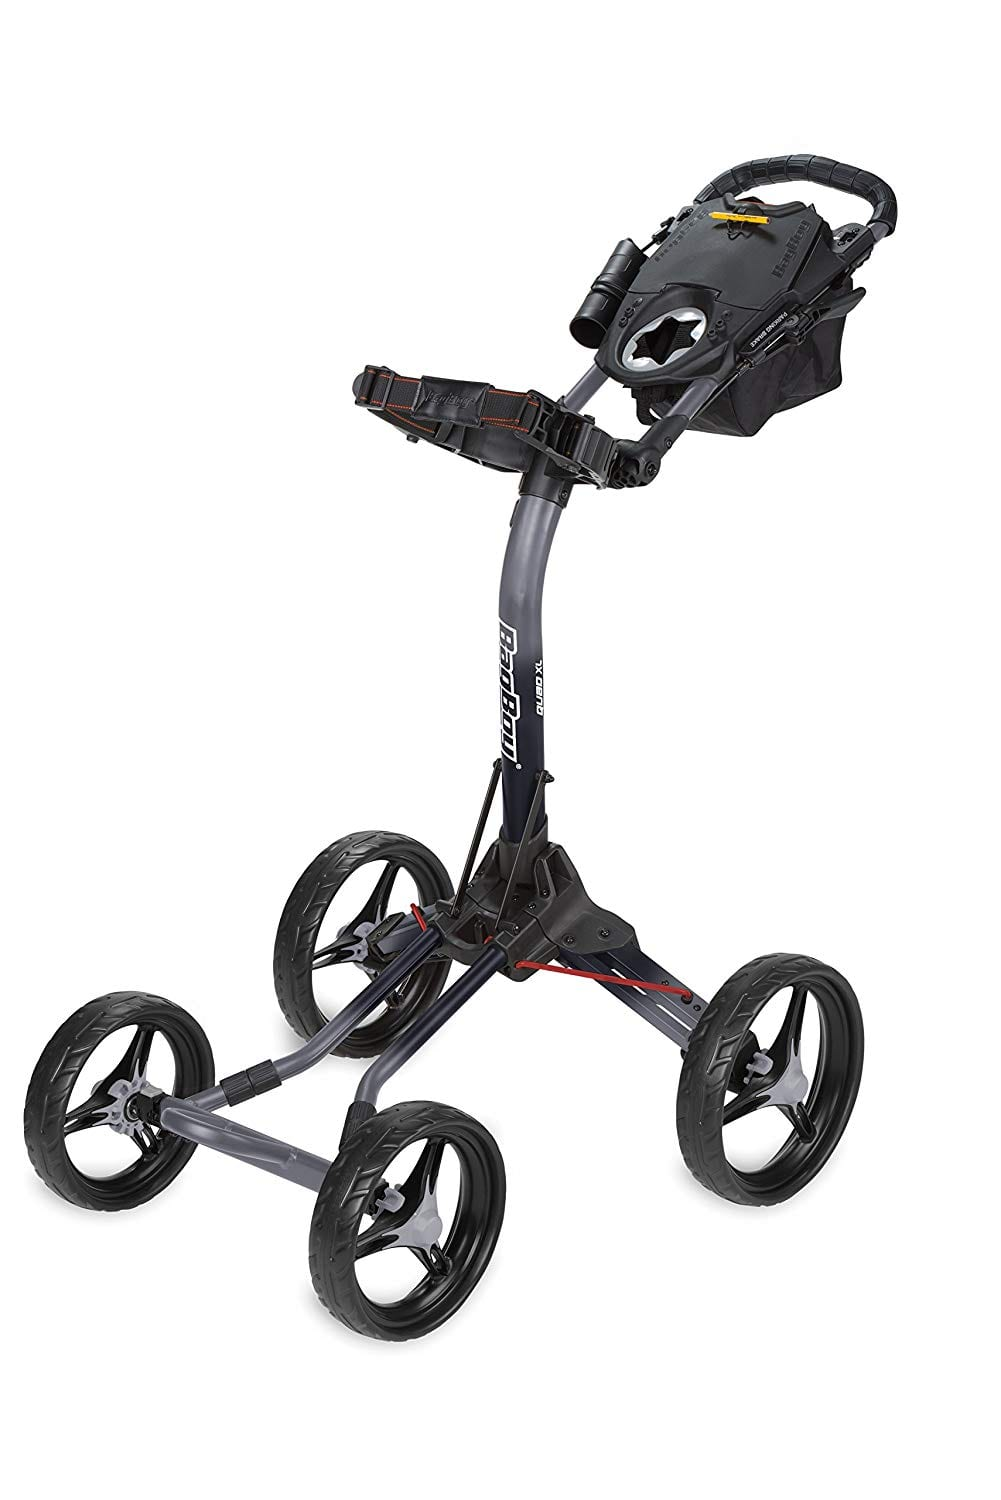 Bag Boy Quad XL Push Cart Battleship Gray:Black Fade